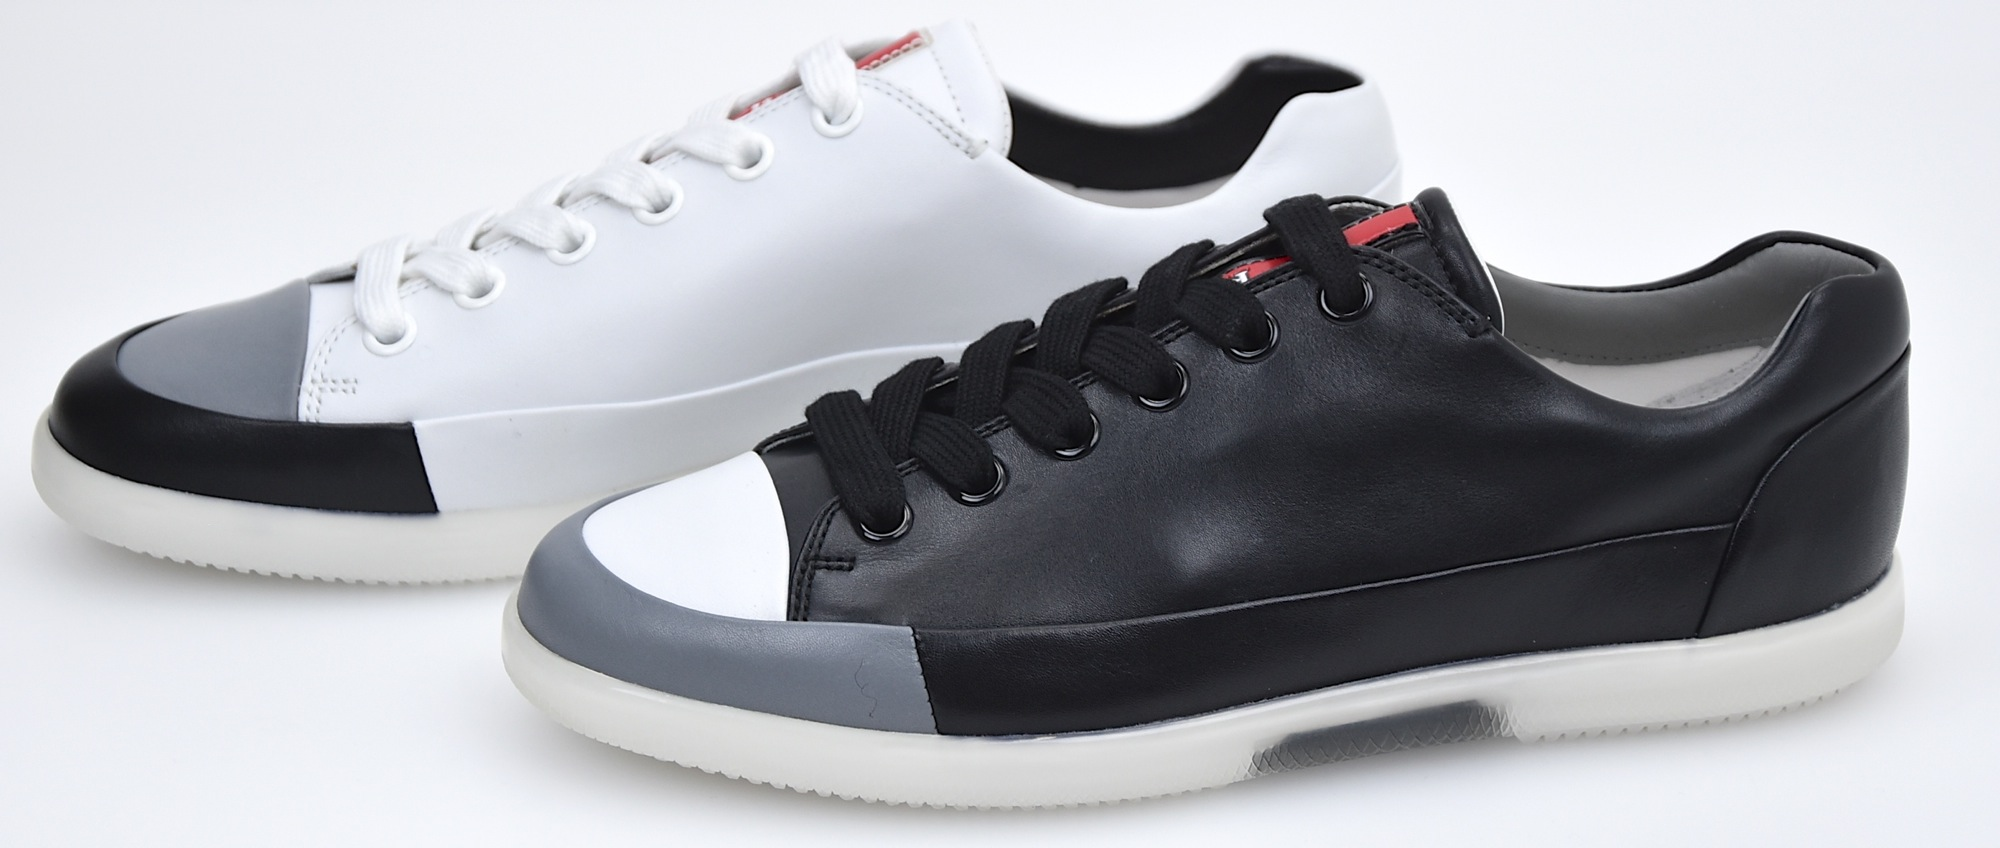 adfbdea8b6bc5 Details about PRADA MAN SNEAKER SHOES CASUAL FREE TIME LEATHER CODE 4E2486